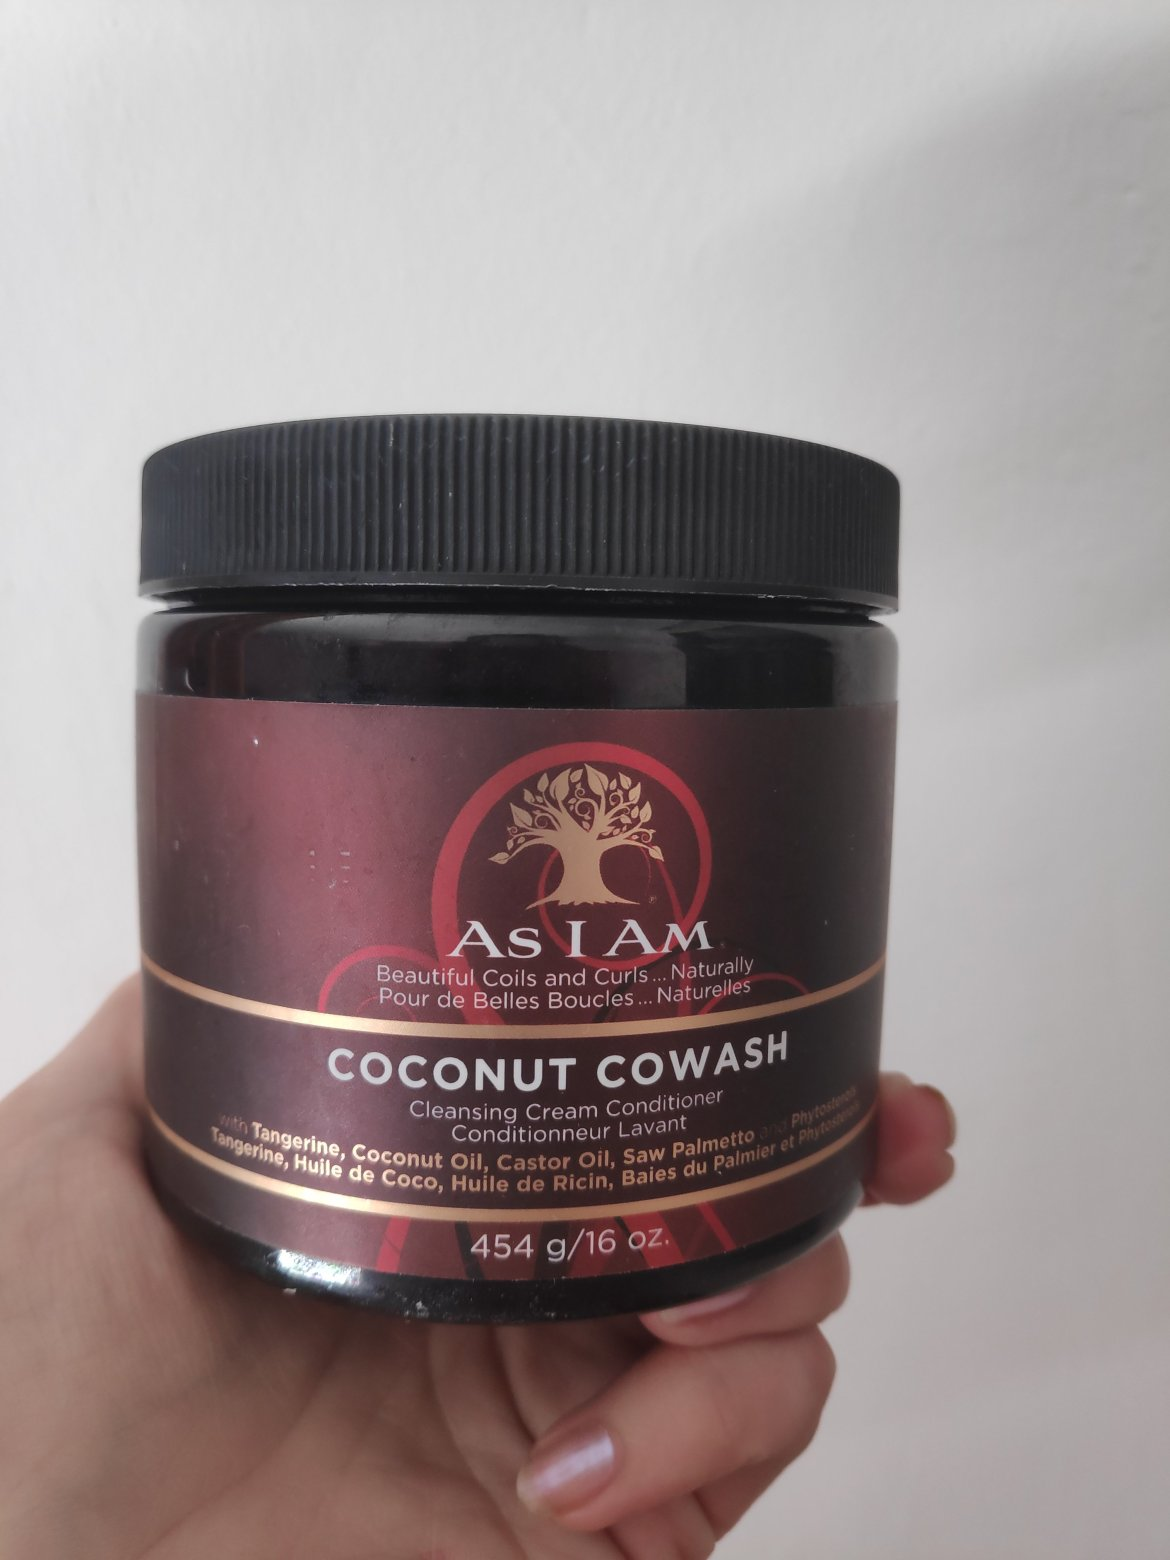 As I Am coconut co wash for type 3a/3b curls